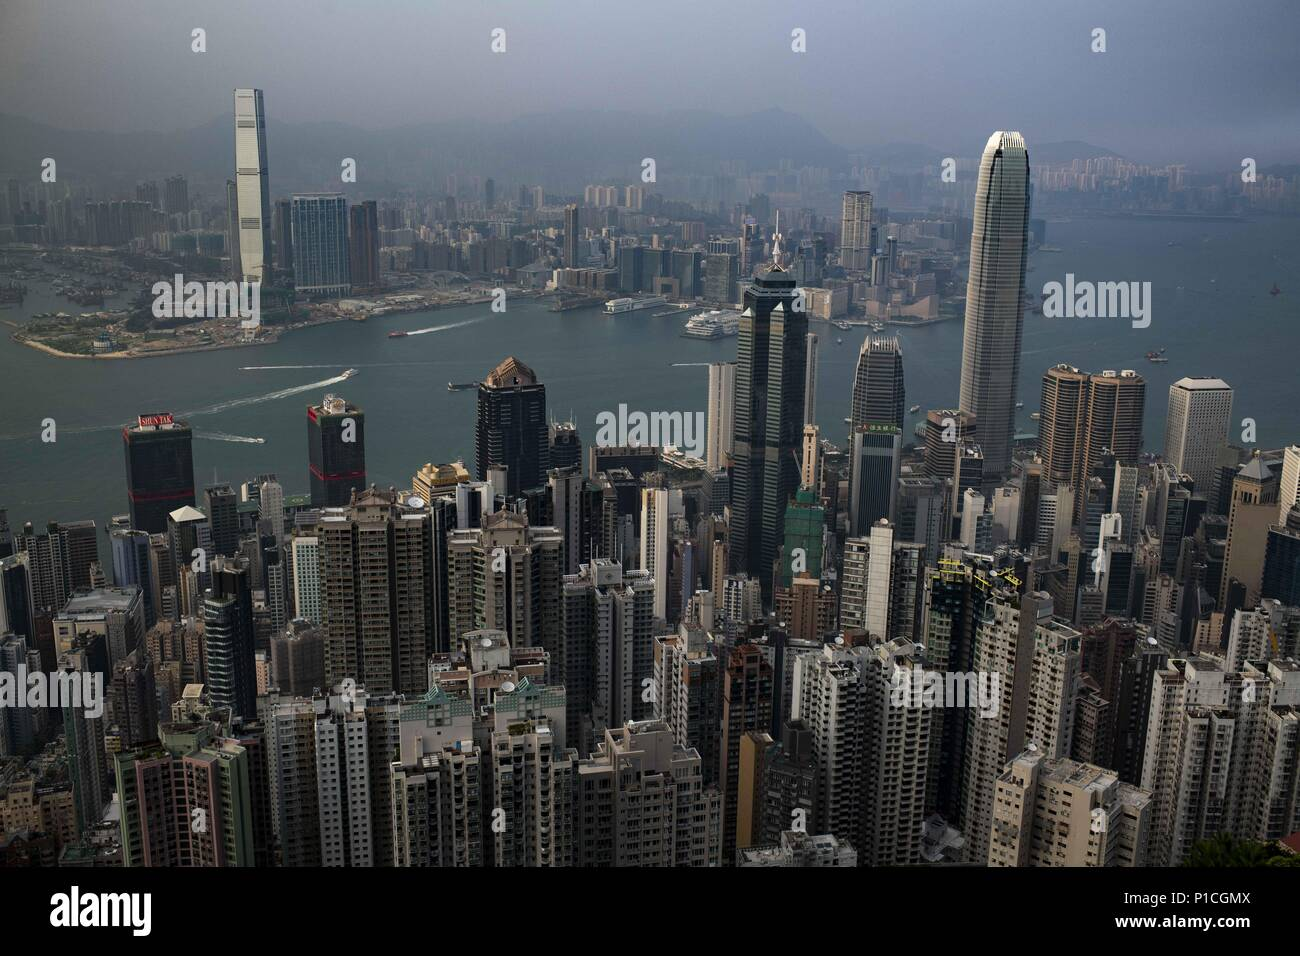 most densely populated regions in the world